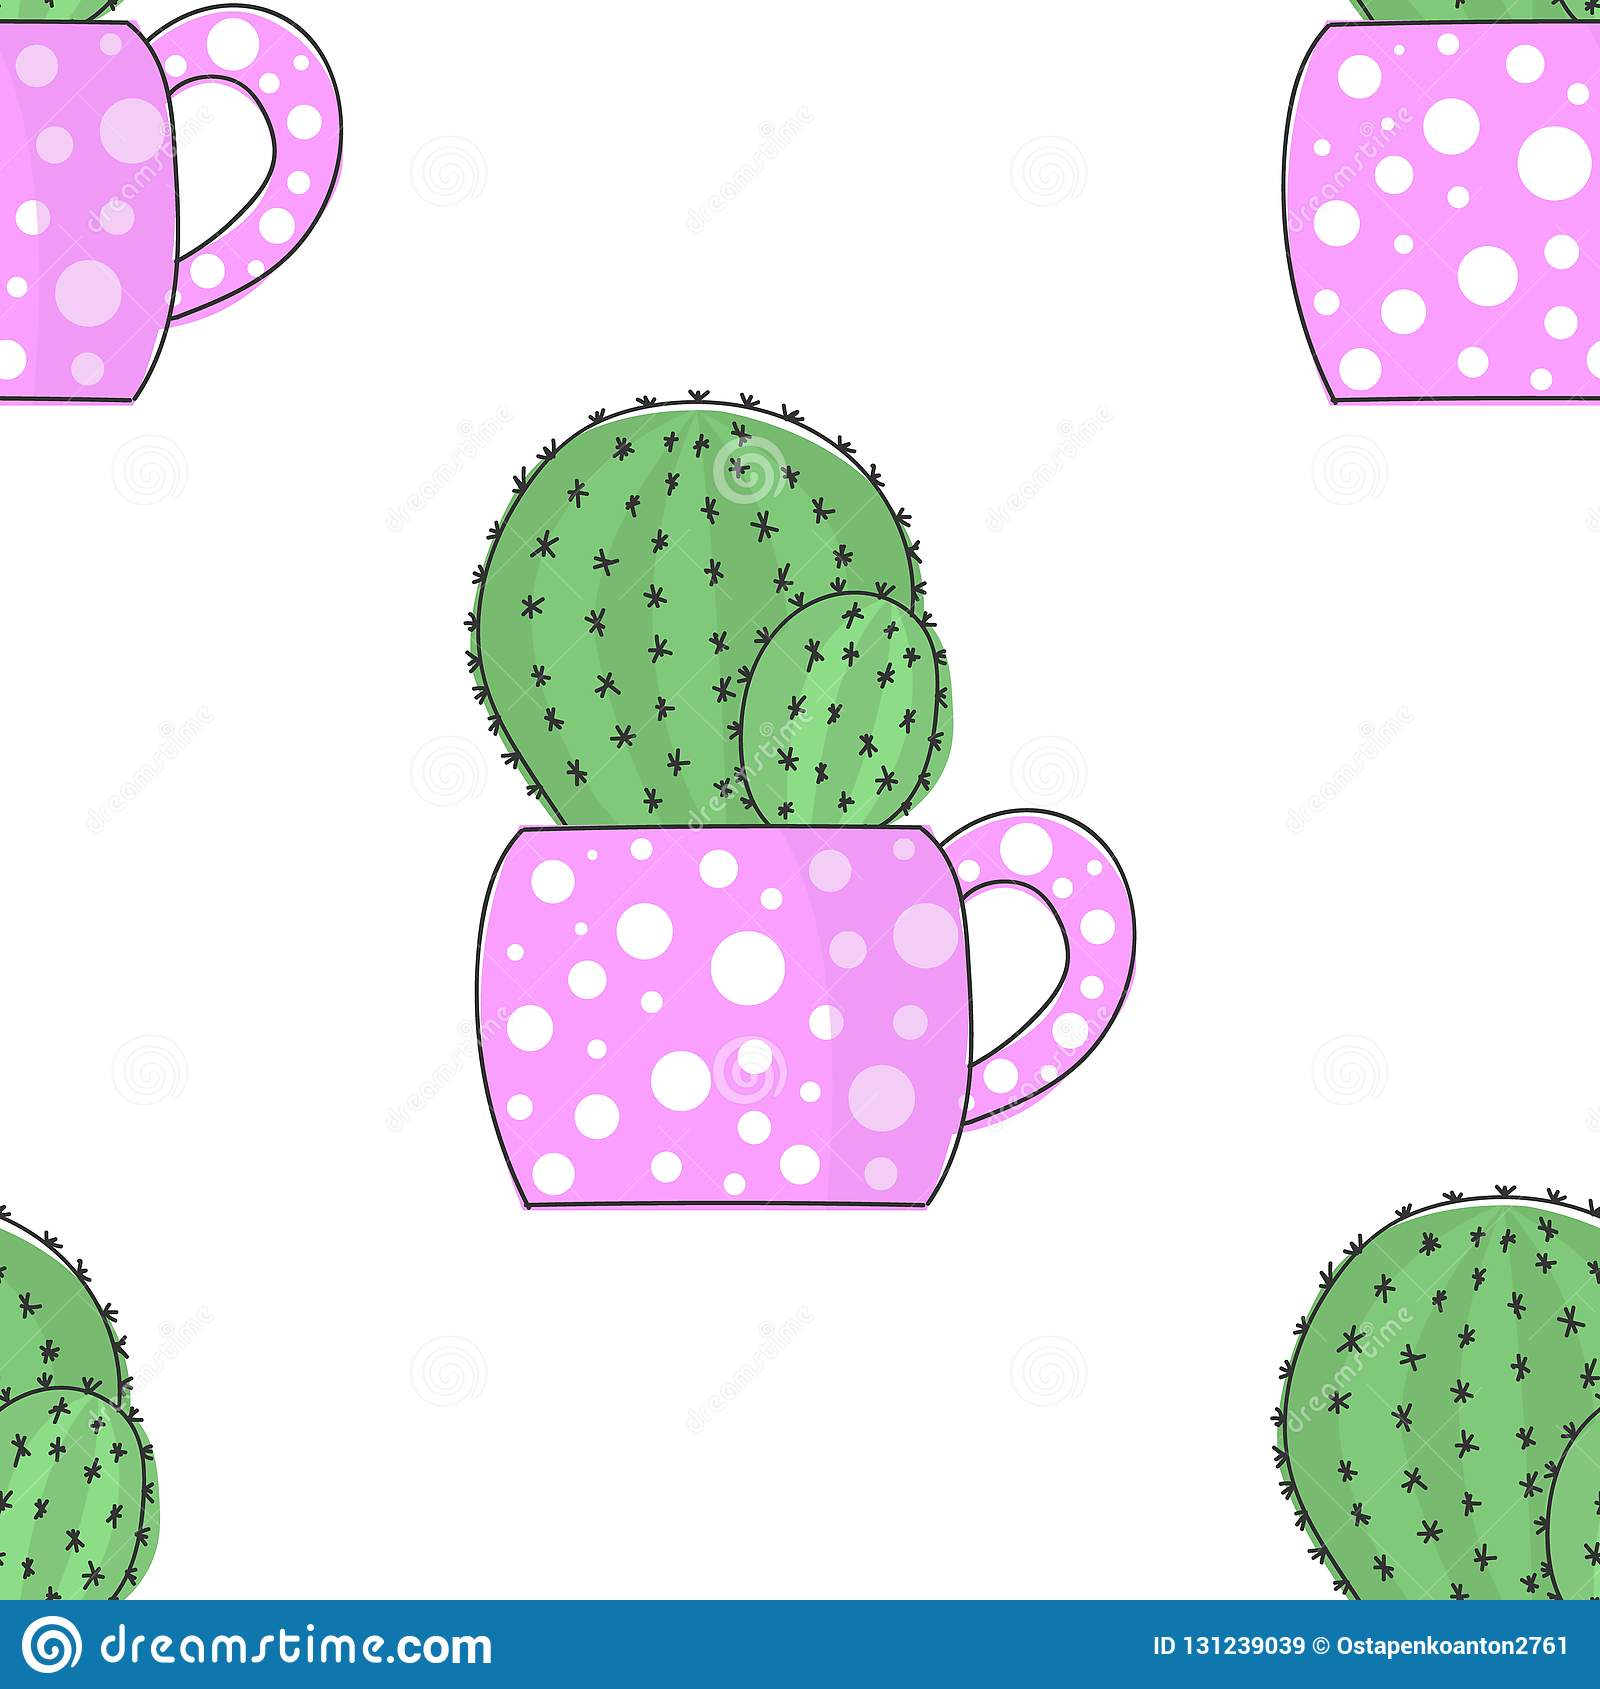 //encrypted-tbn0.gstatic.com/images?q\u003dtbnANd9GcSlVx6W8SEhhaz5SuSaf-QzciuIhT4Mg4-eA4yb-XL0gGcU1UbxXw & Vector Image Bright Cactus In A Flower Pot With Polka Dots. Seamless ...